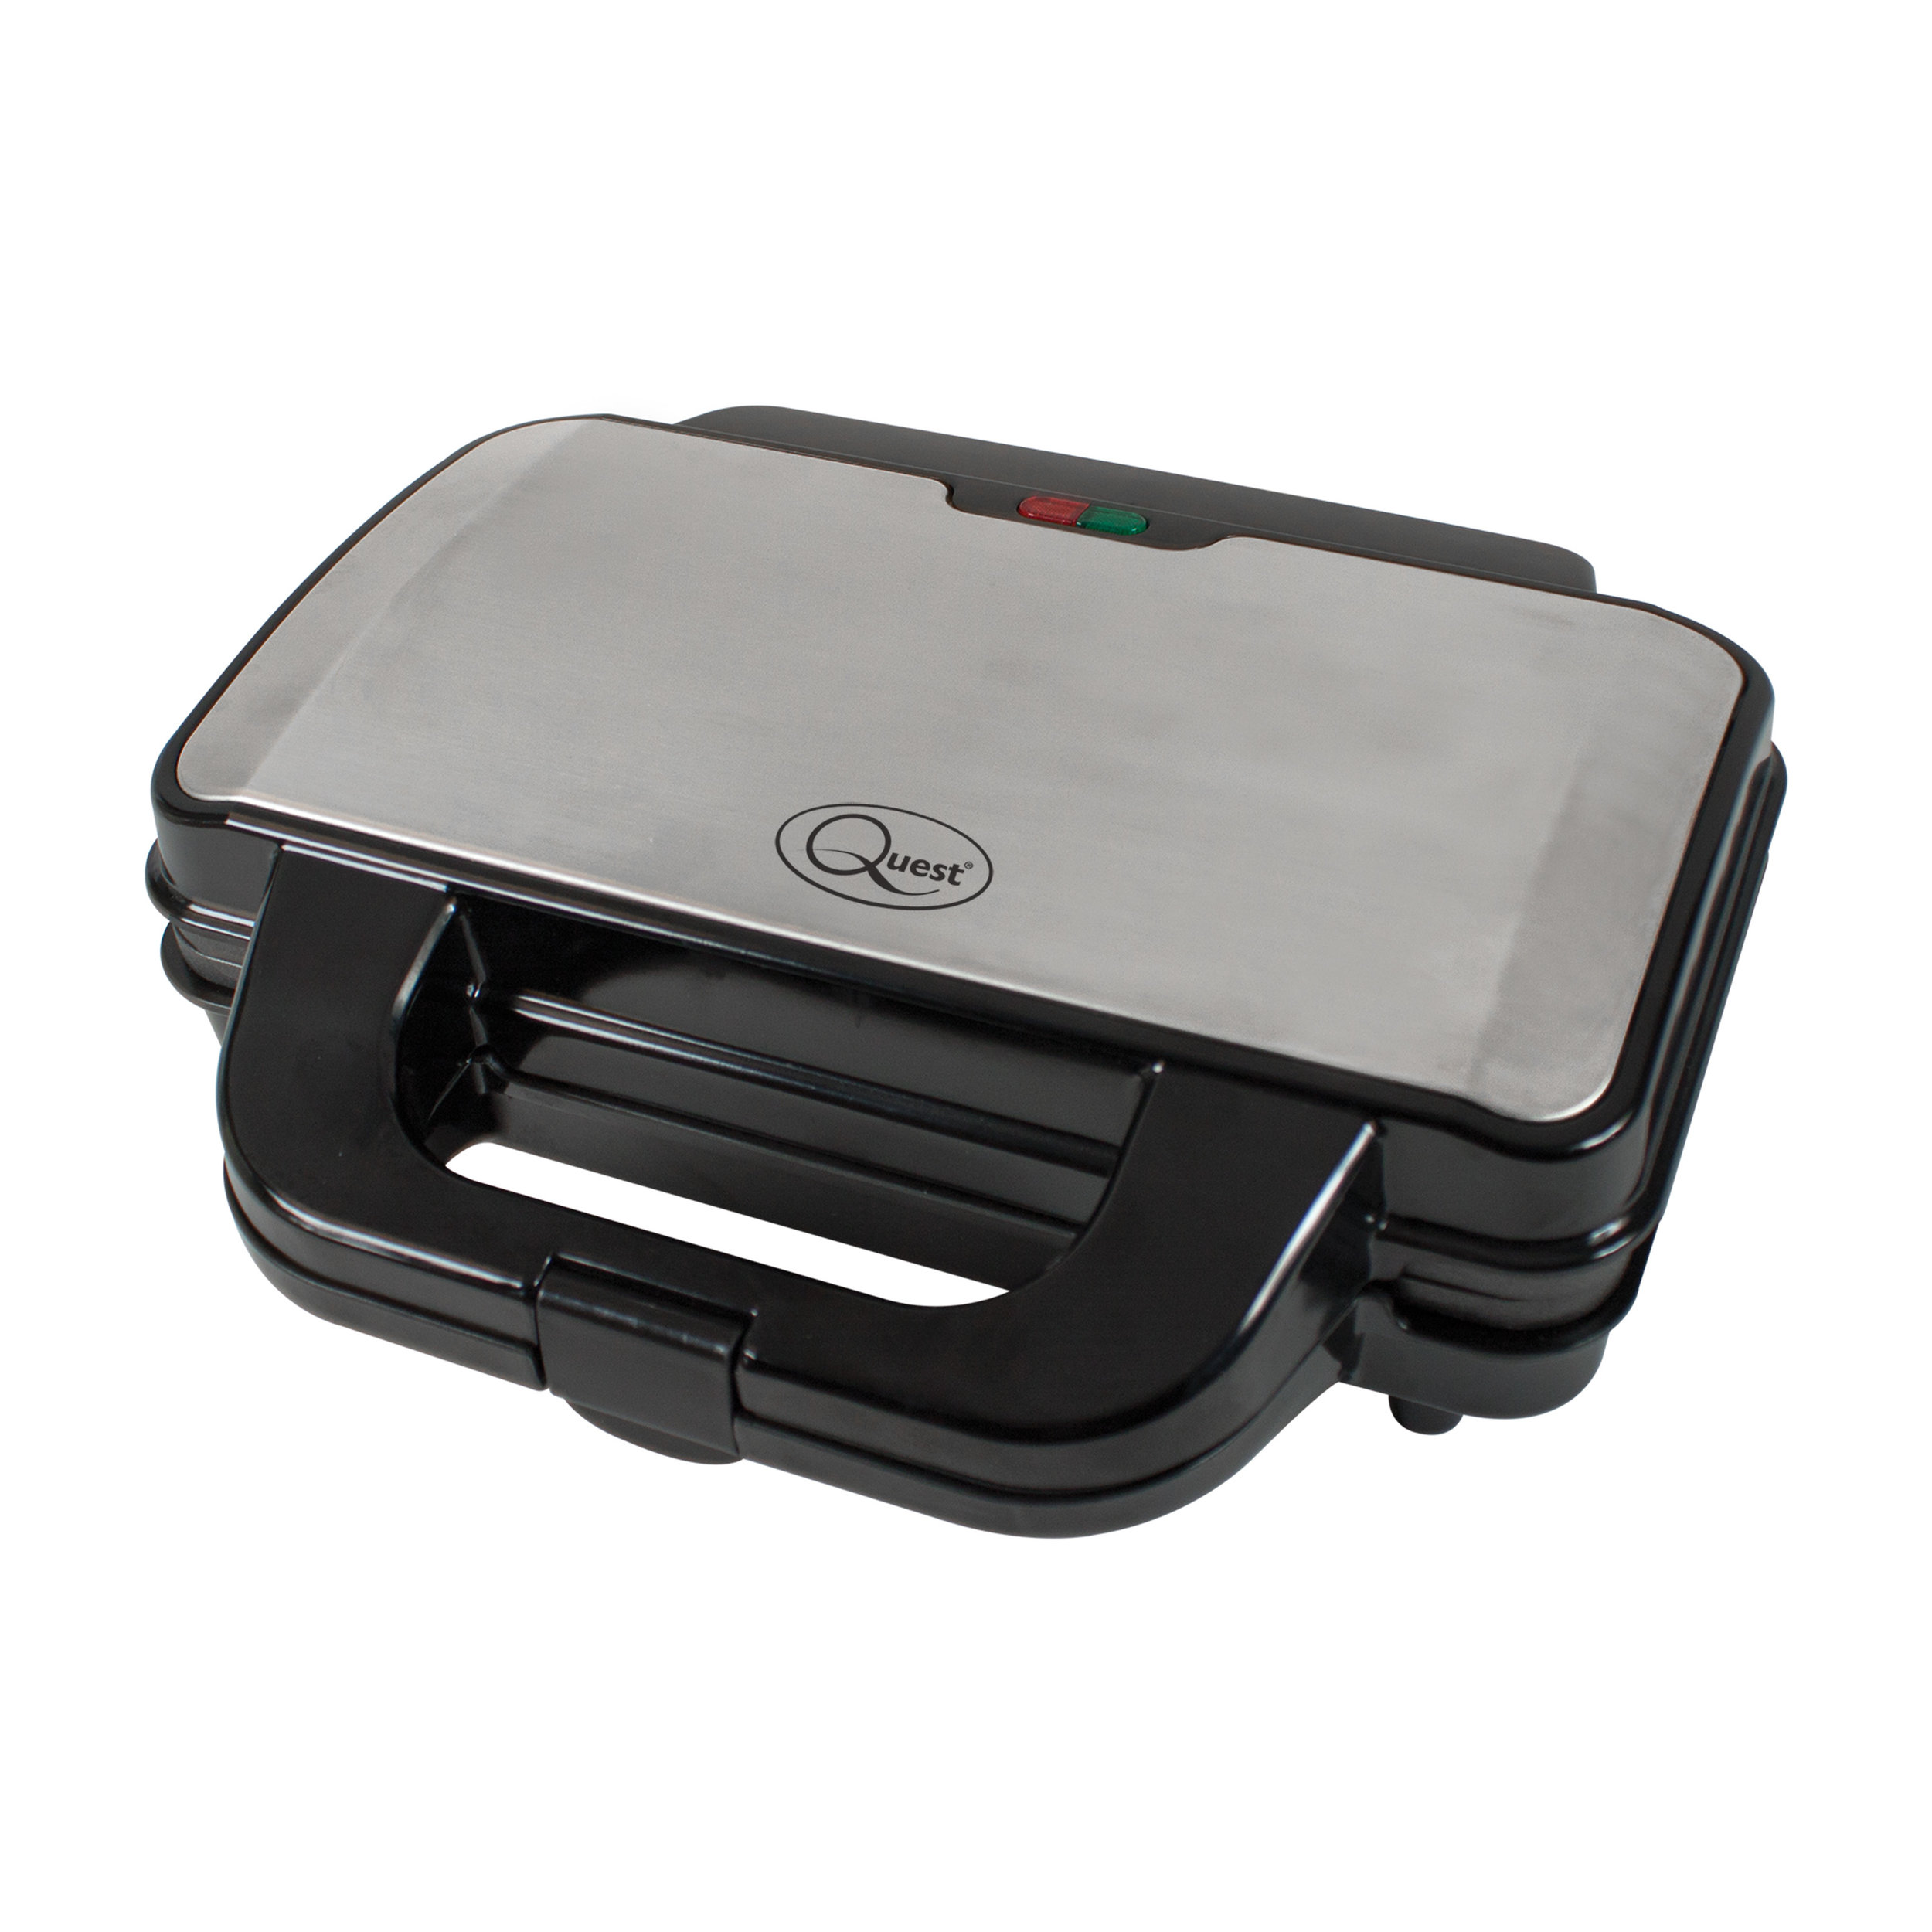 Deep Fill Sandwich Toaster close